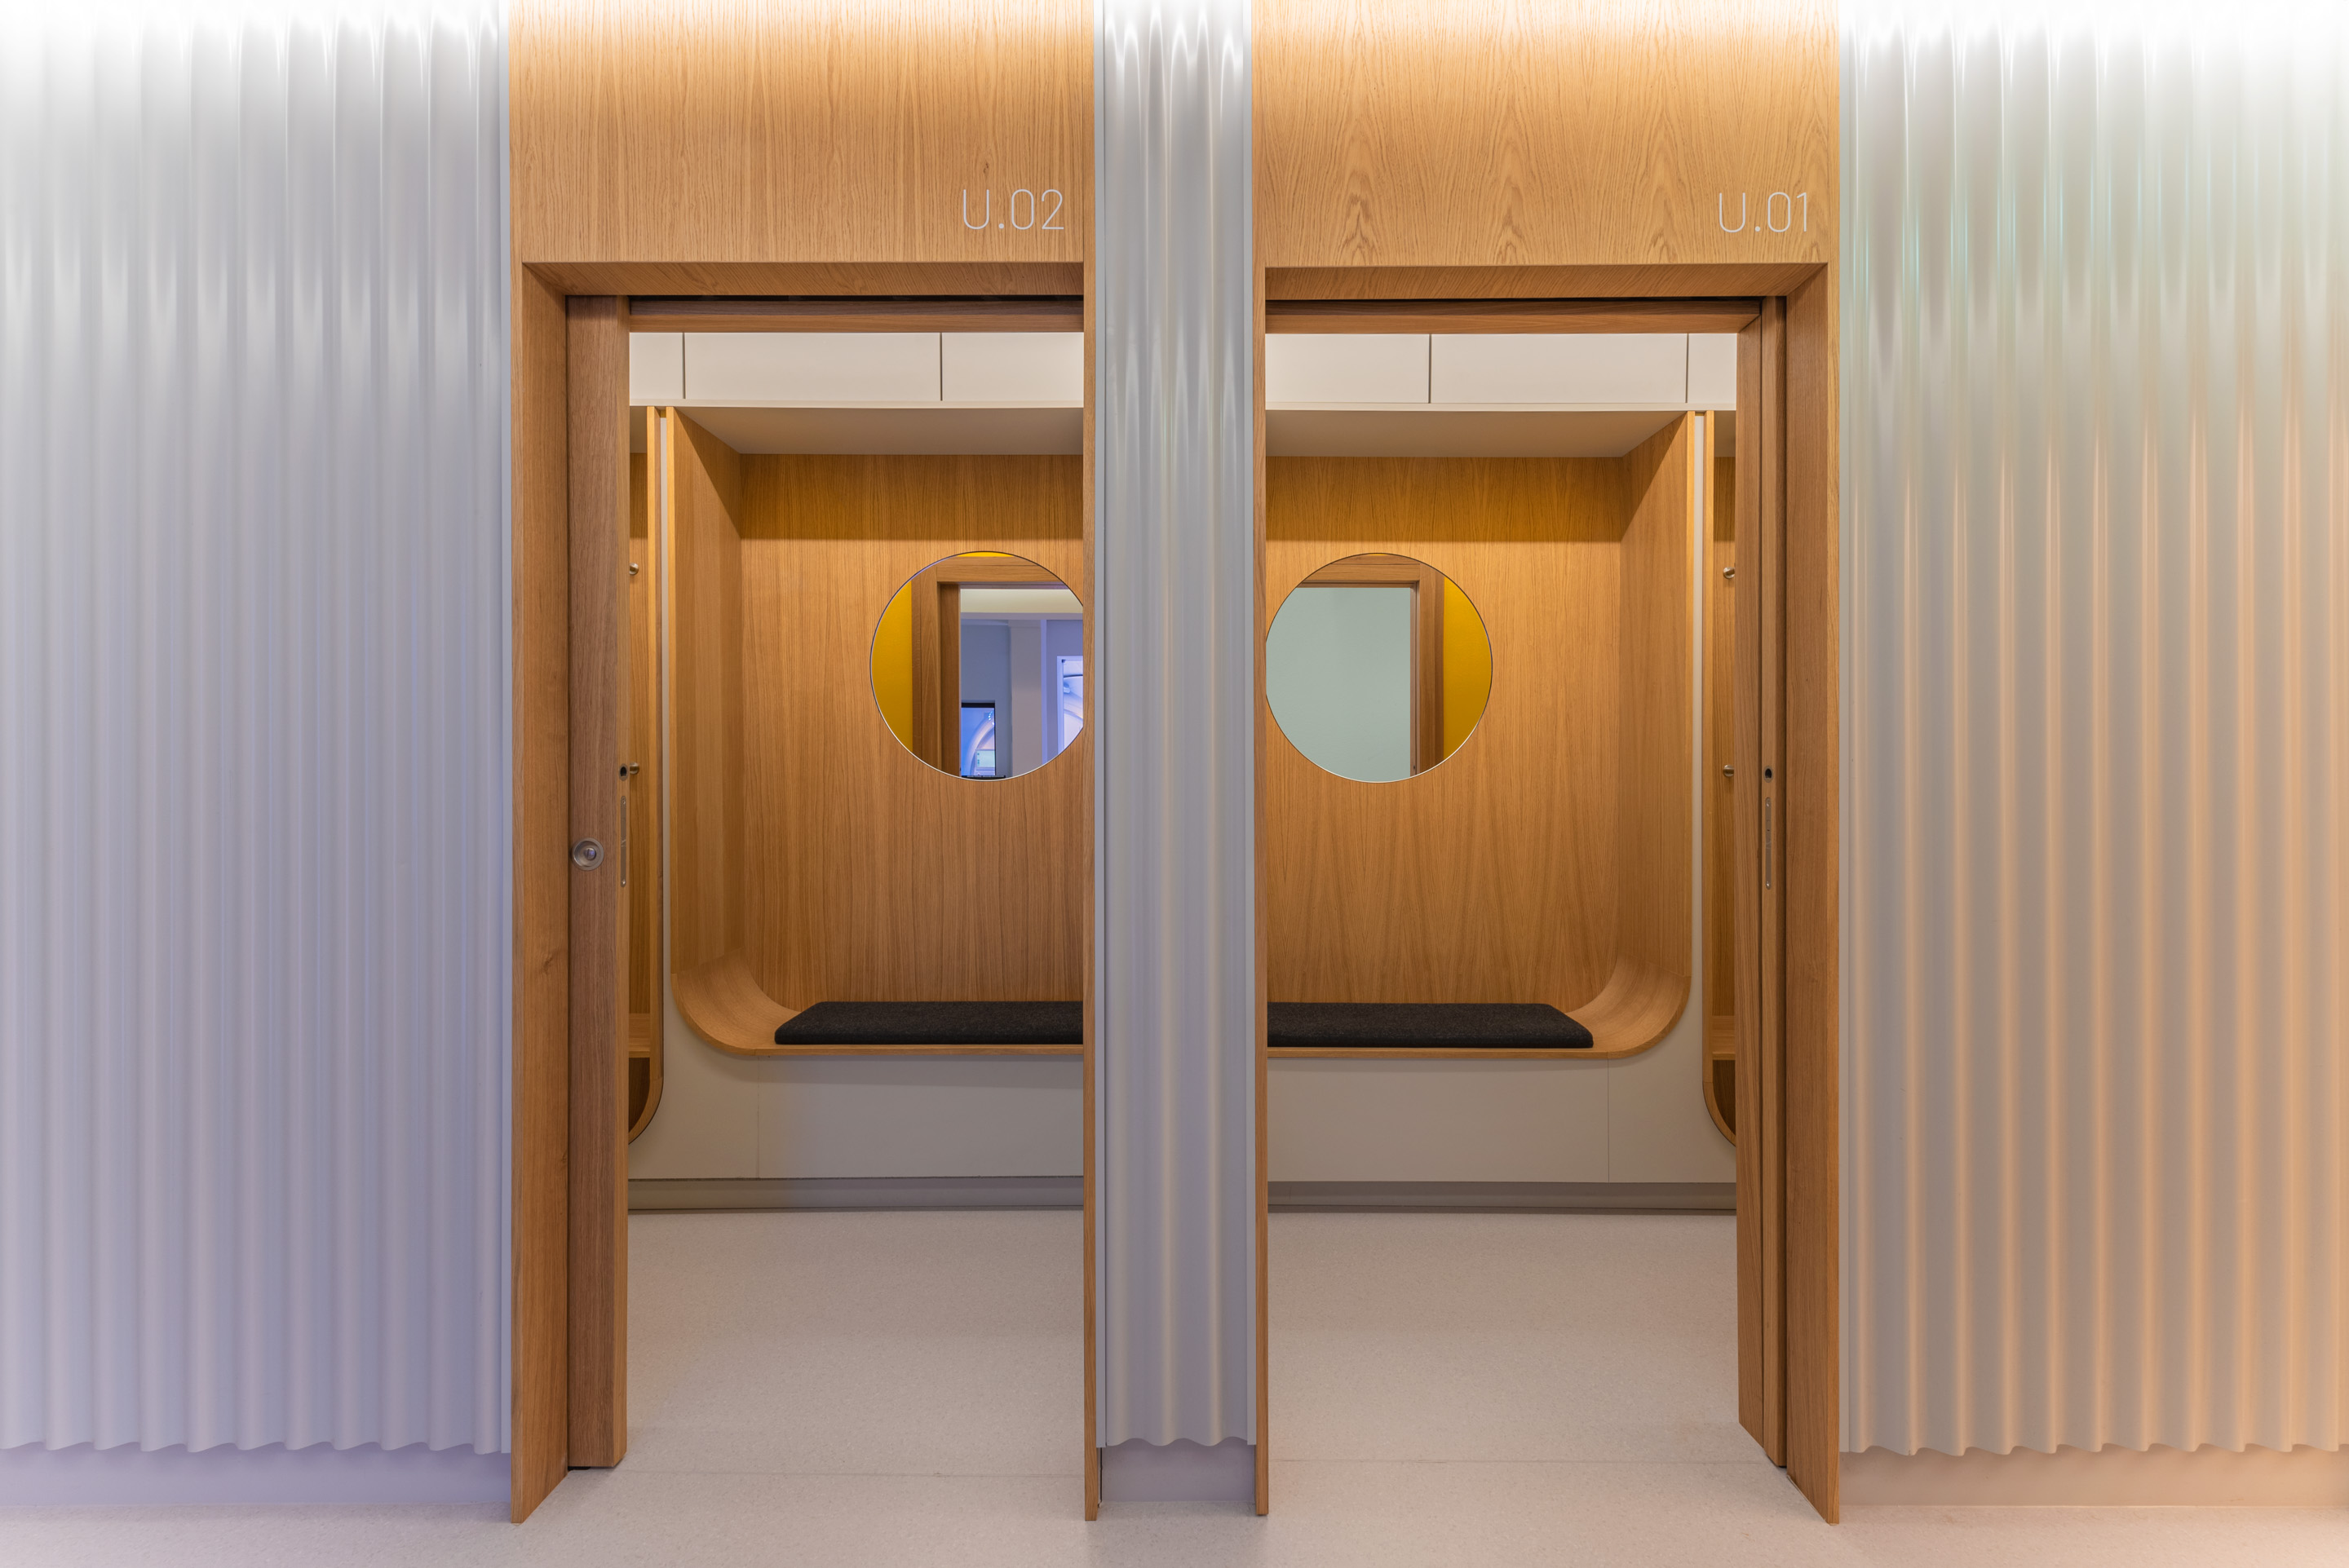 Dressing rooms with custom built wood furniture and doors, round mirrors and light grey waving metal wall paneling